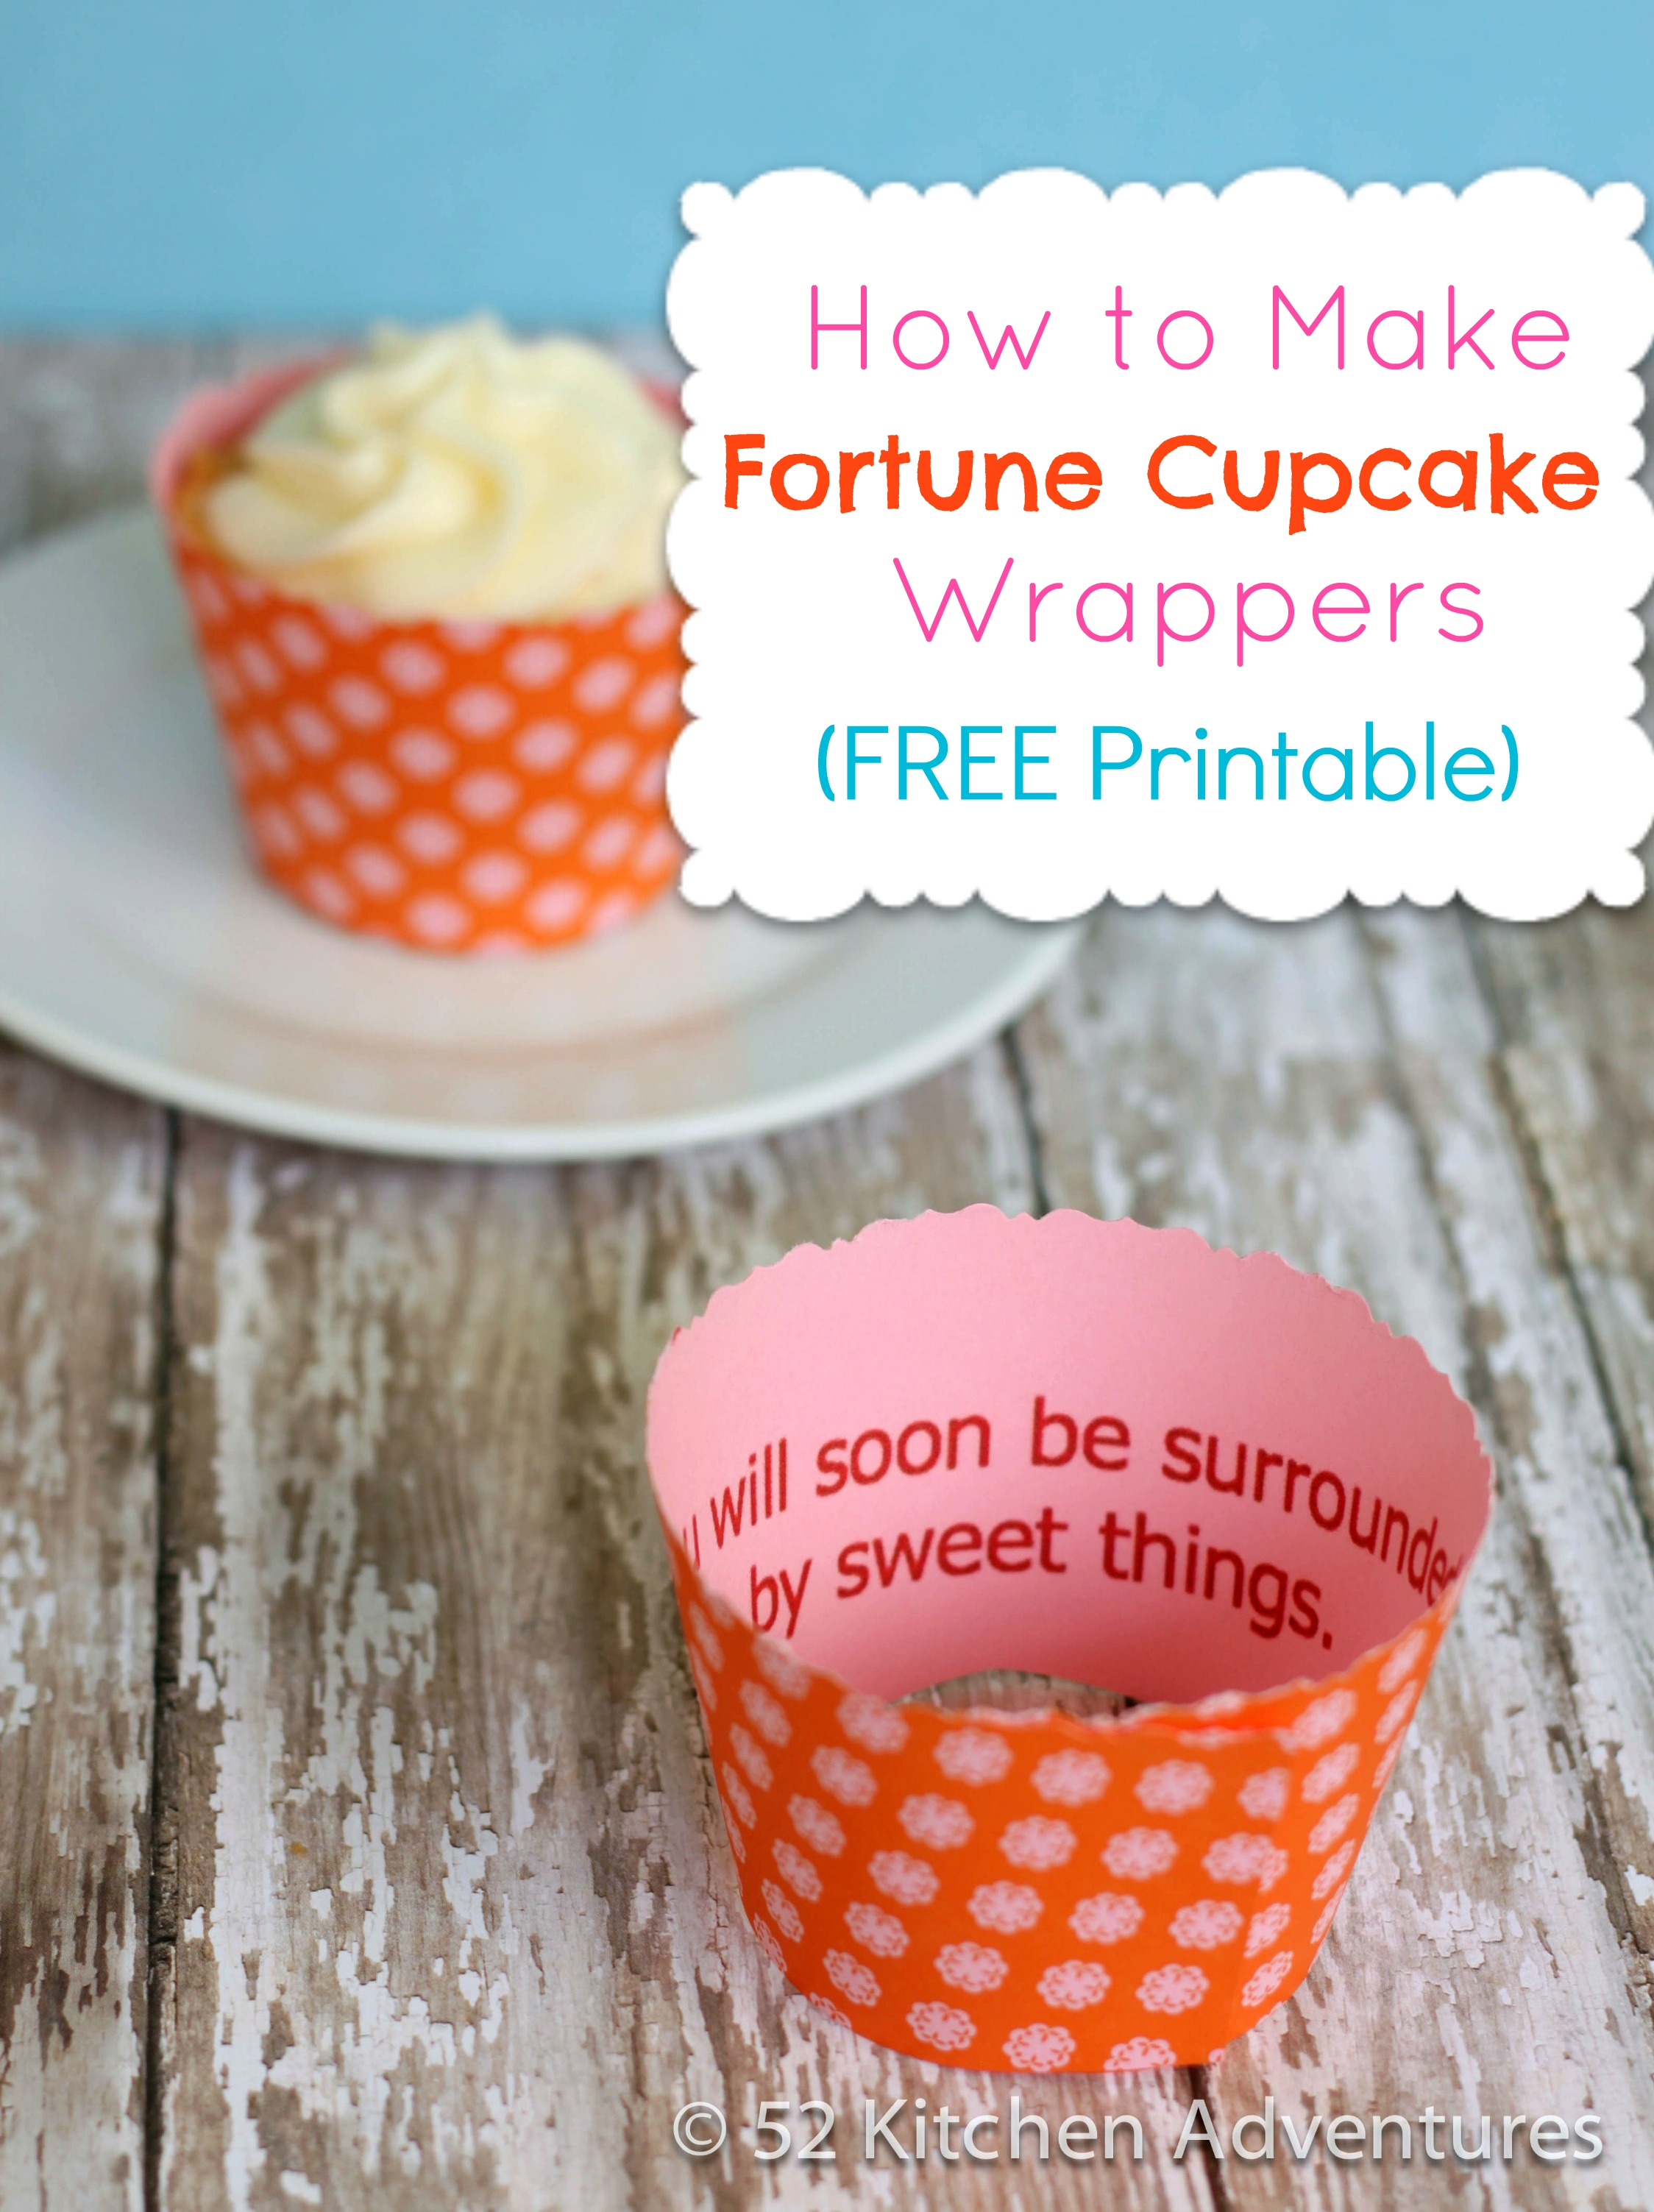 How to Make Fortune Cupcake Wrappers (FREE printable!)